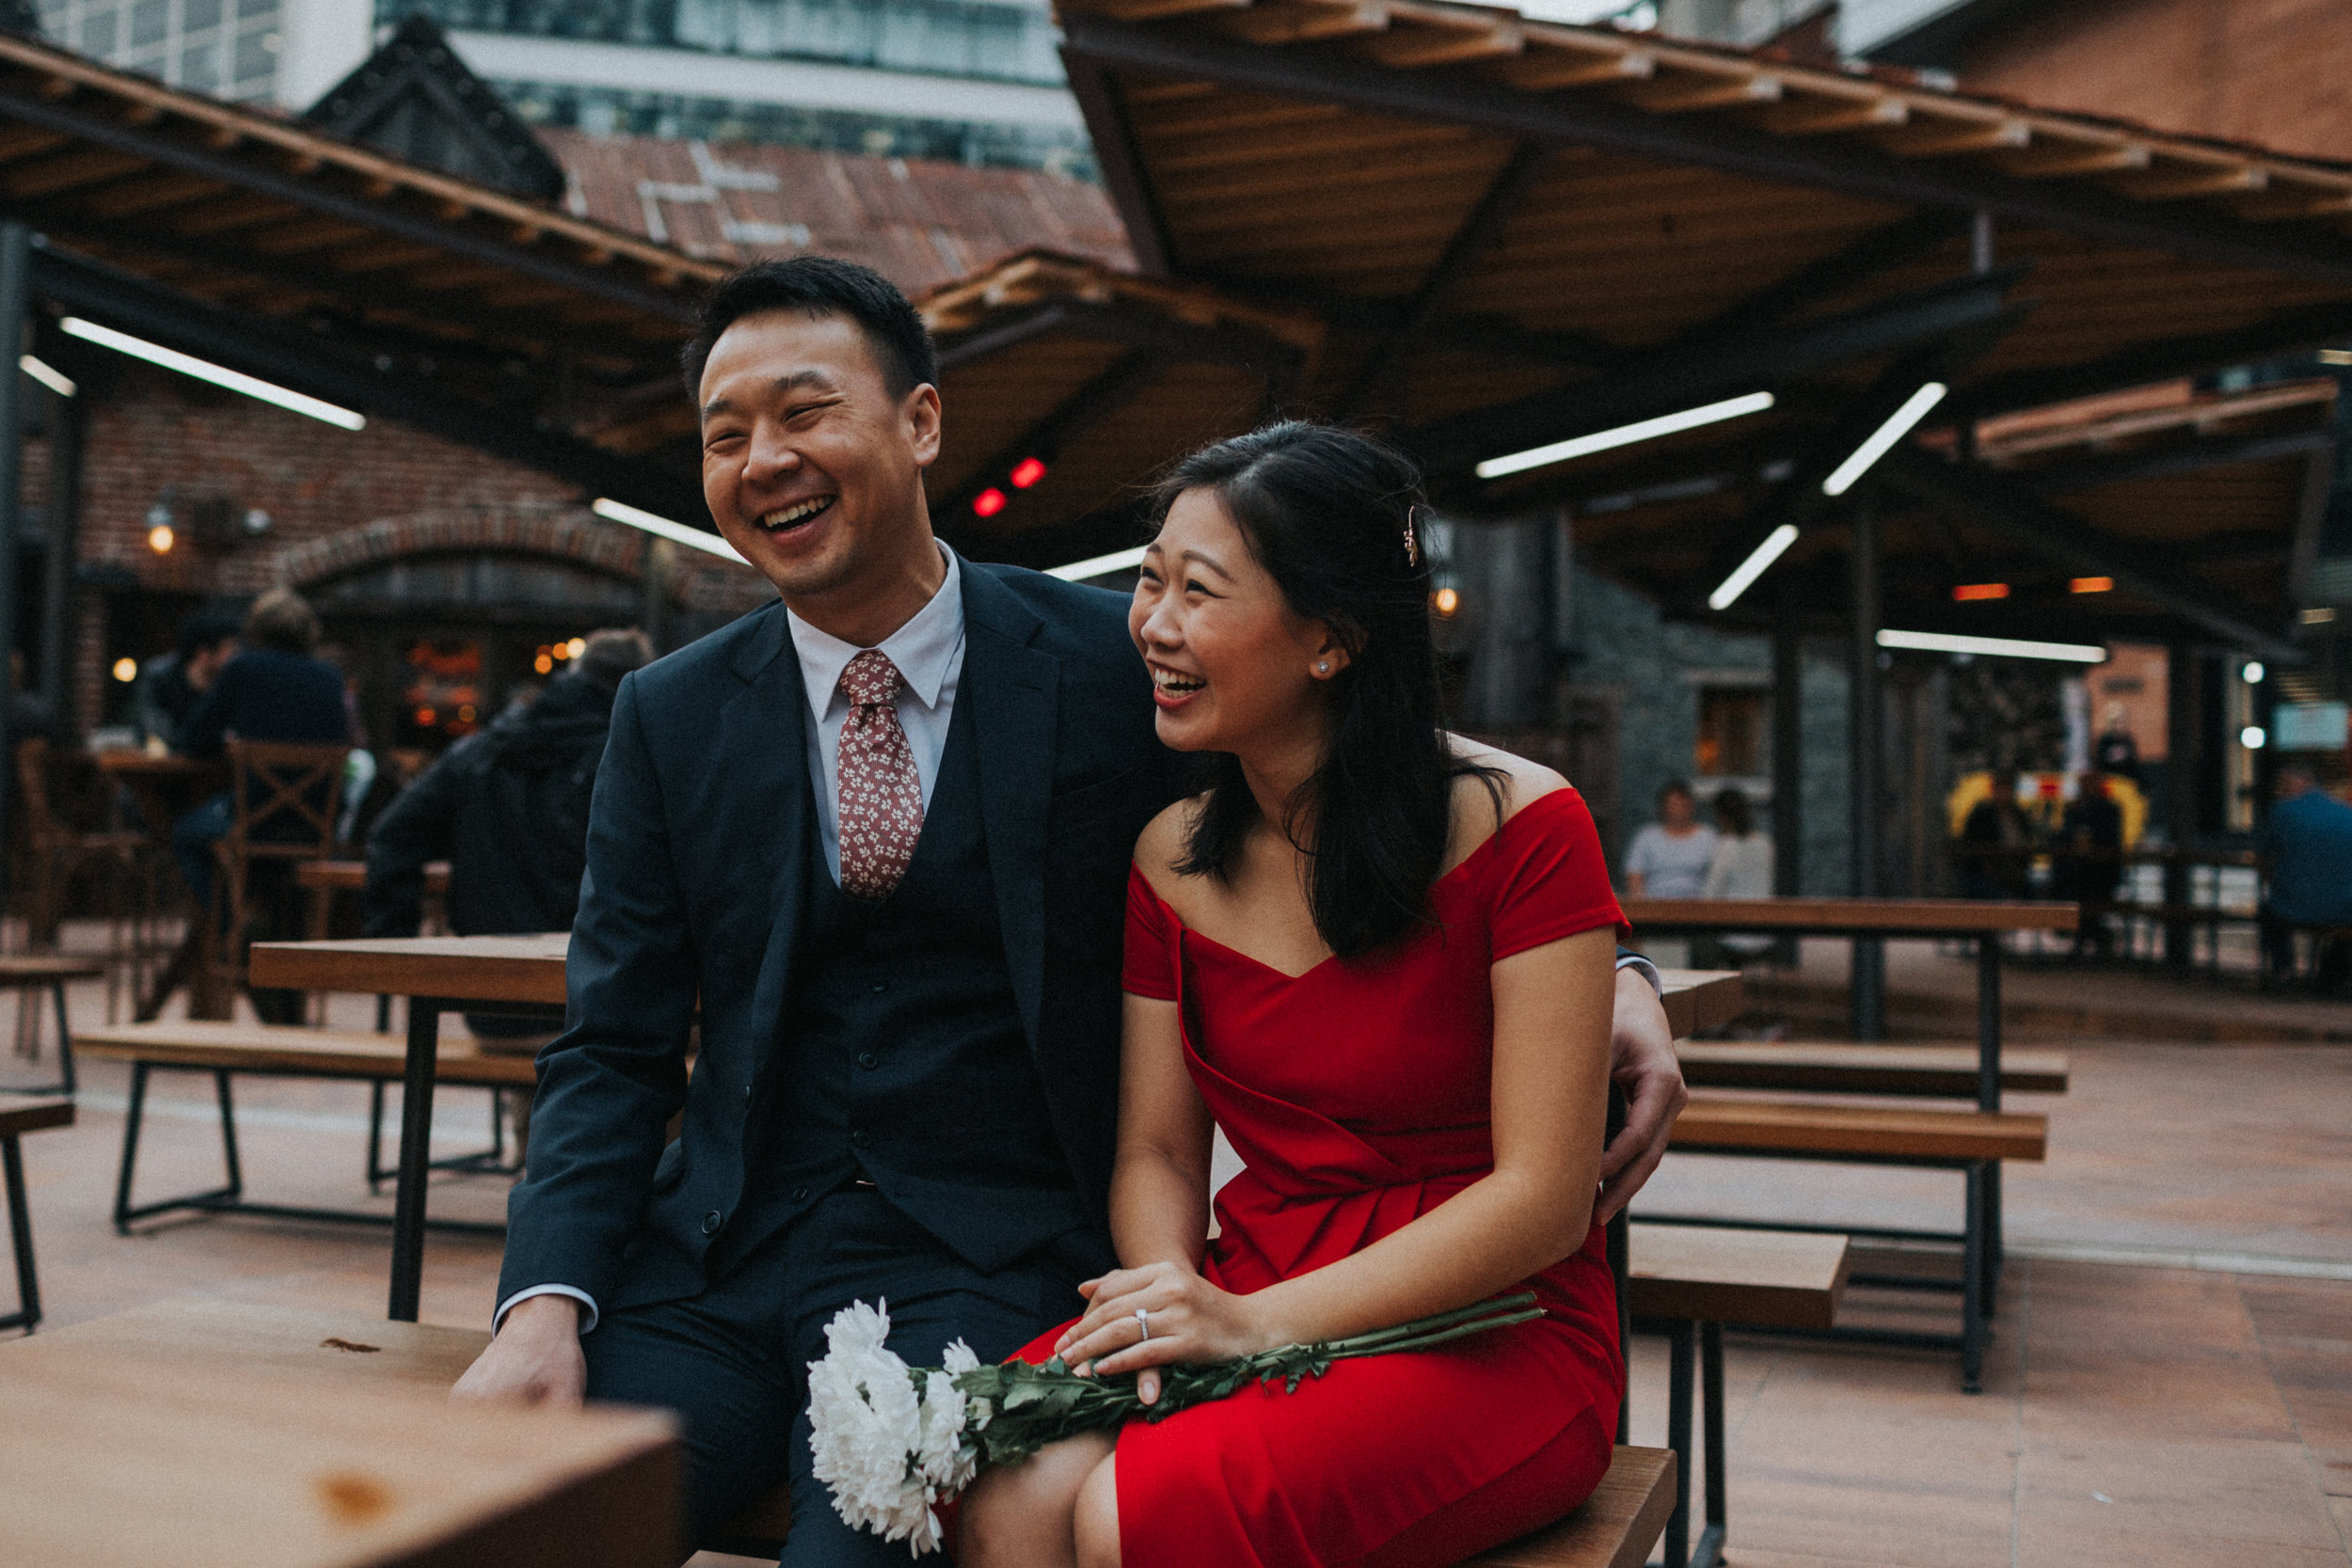 Couple sit and laugh together.